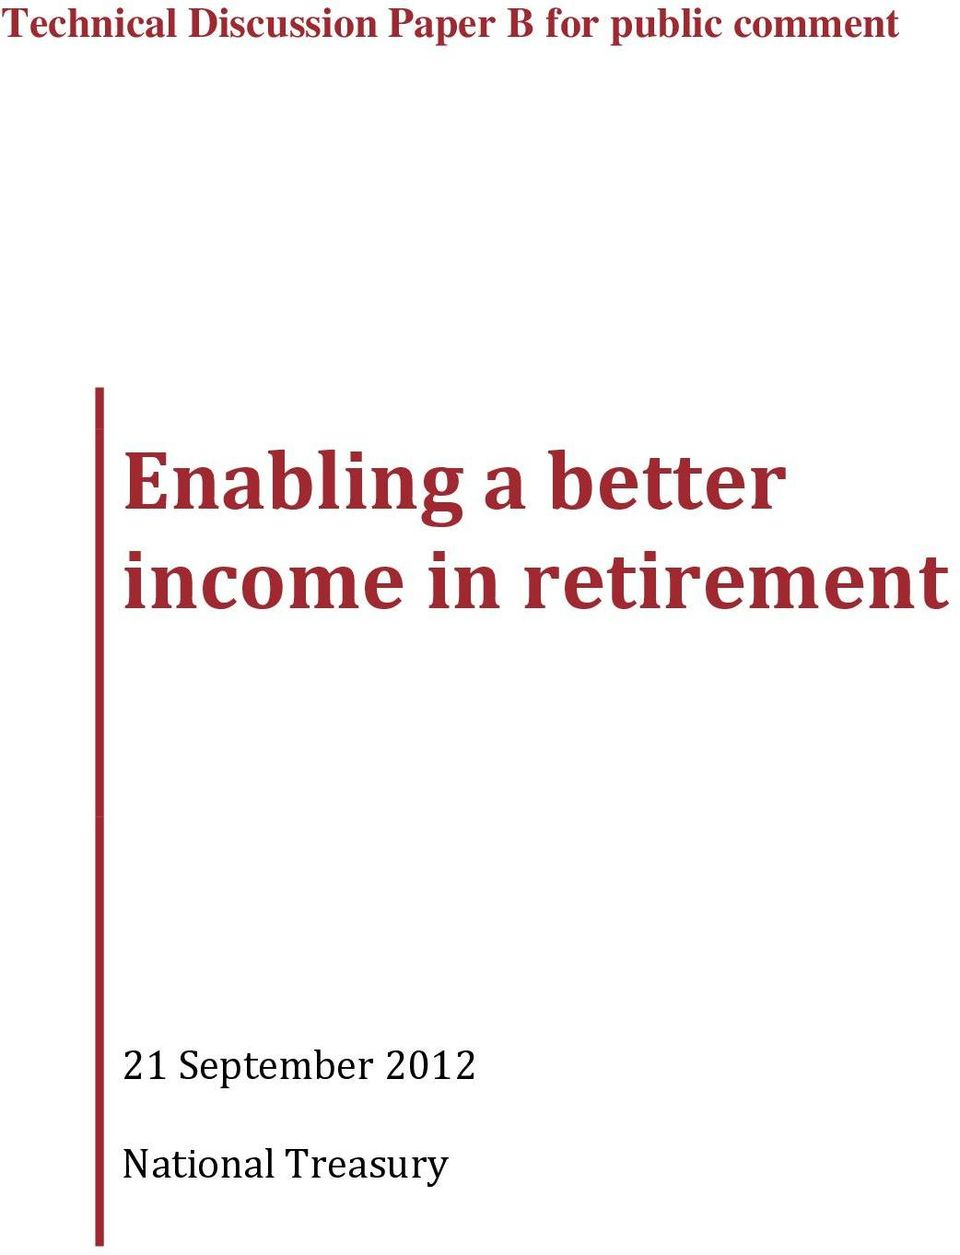 better income in retirement 21